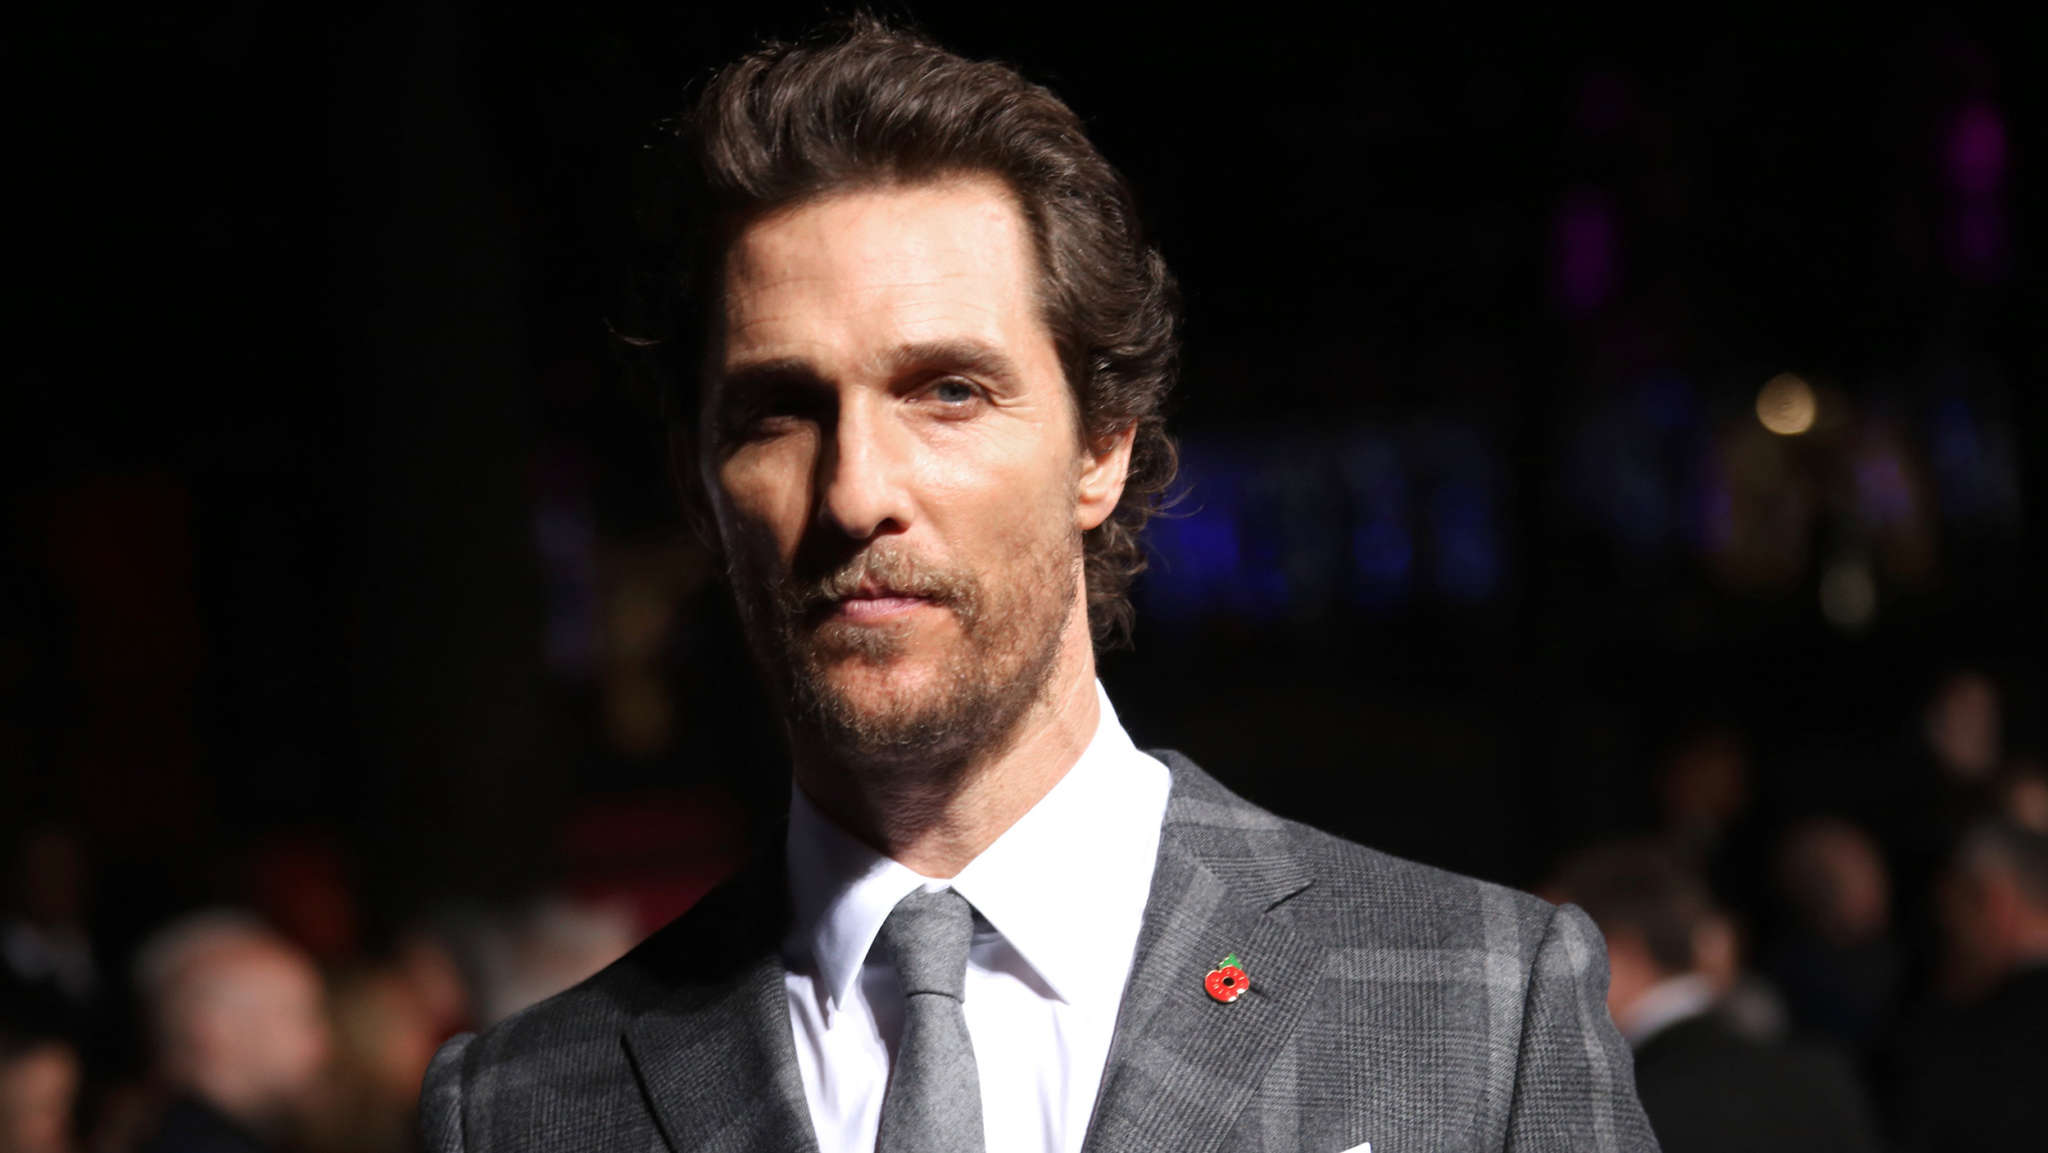 Matthew McConaughey Suggests That Some Hollywood Stars Are 'Hypocrites' For Not Understanding The Reactions To 2020 Election